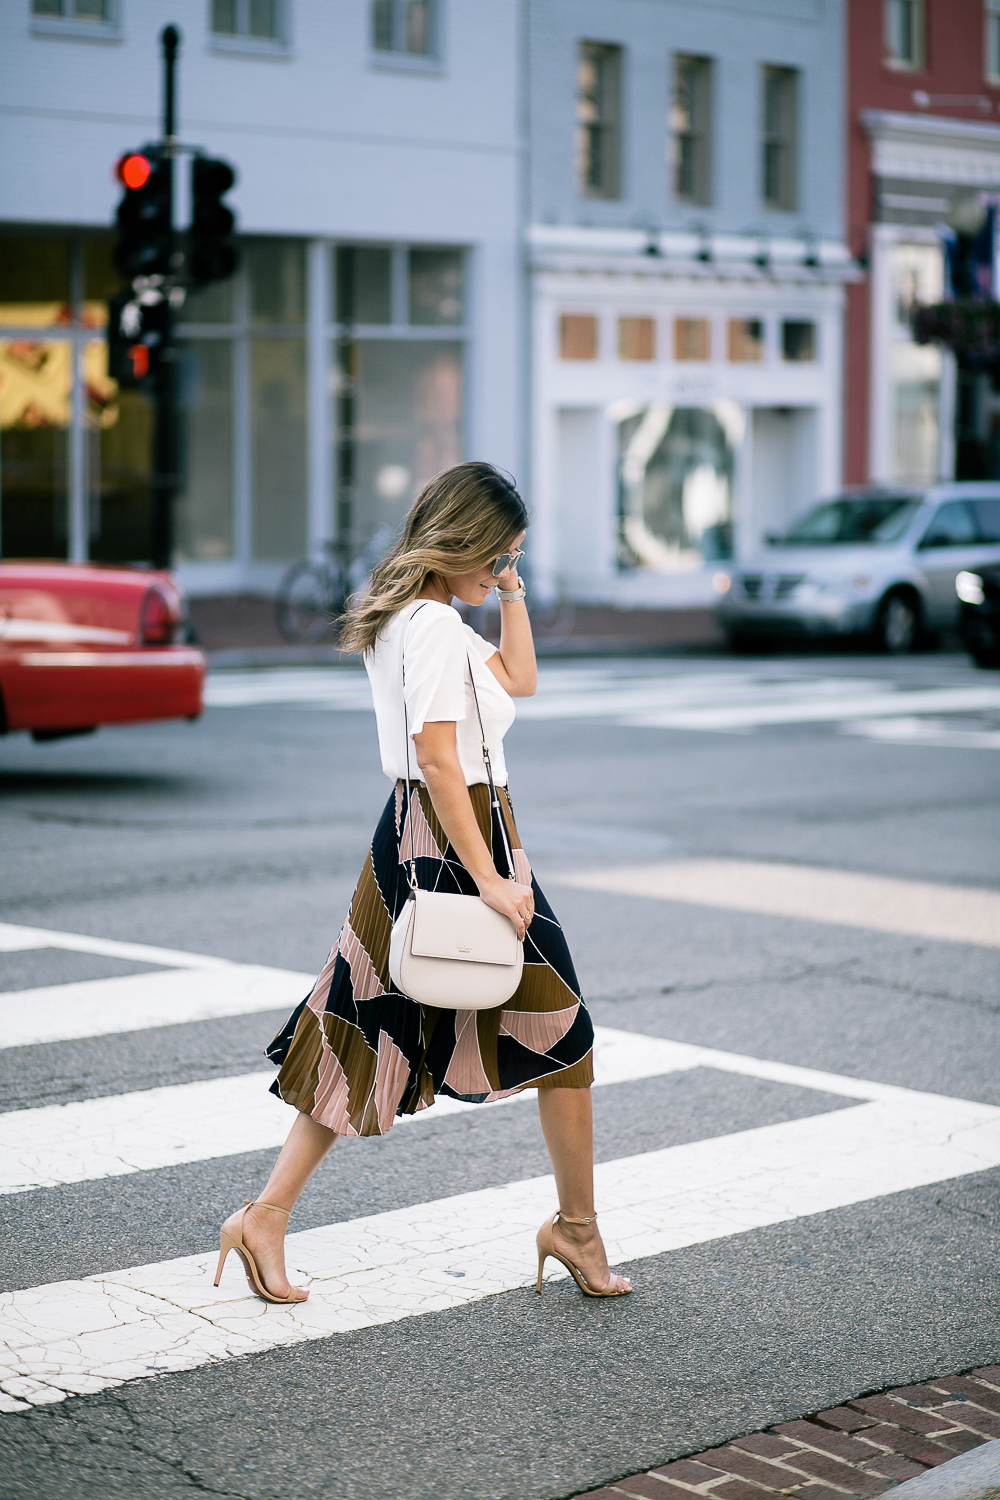 Style MBA Wears Pleated Ann Taylor Skirt